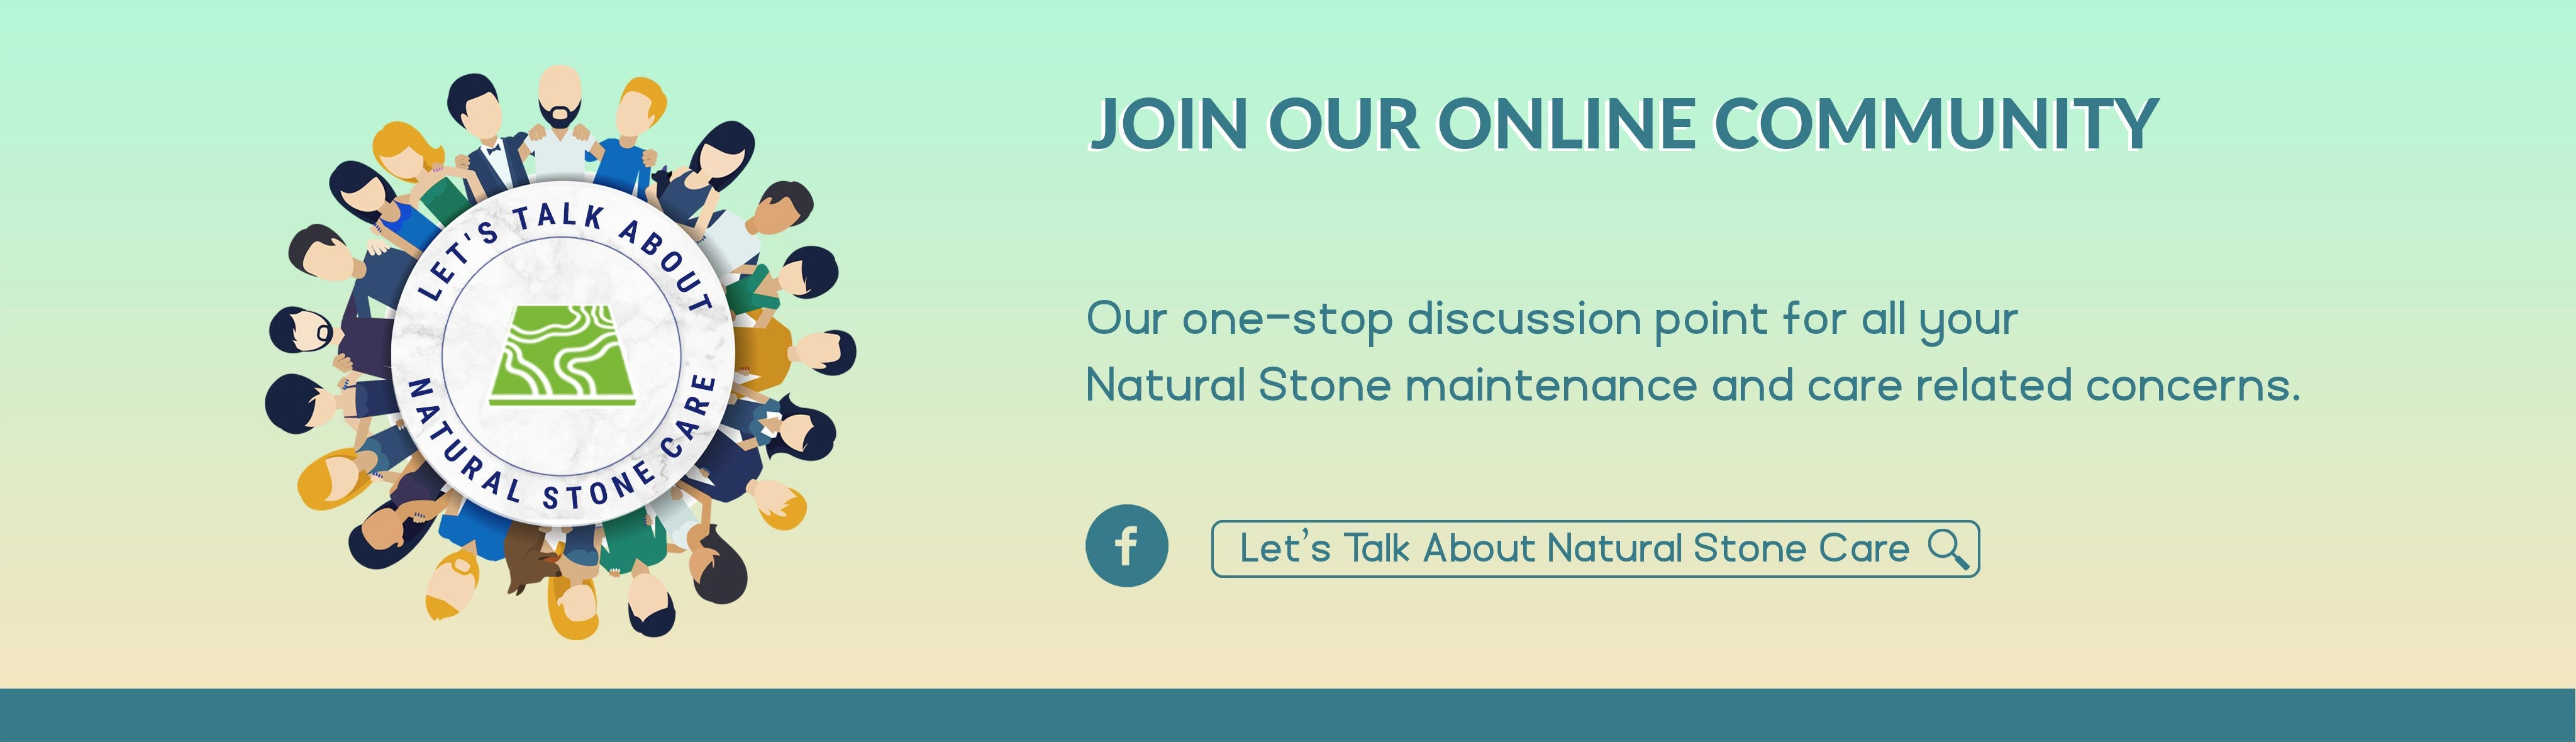 Stone Doctor Australia Facebook Group Page - All About Natural Stone